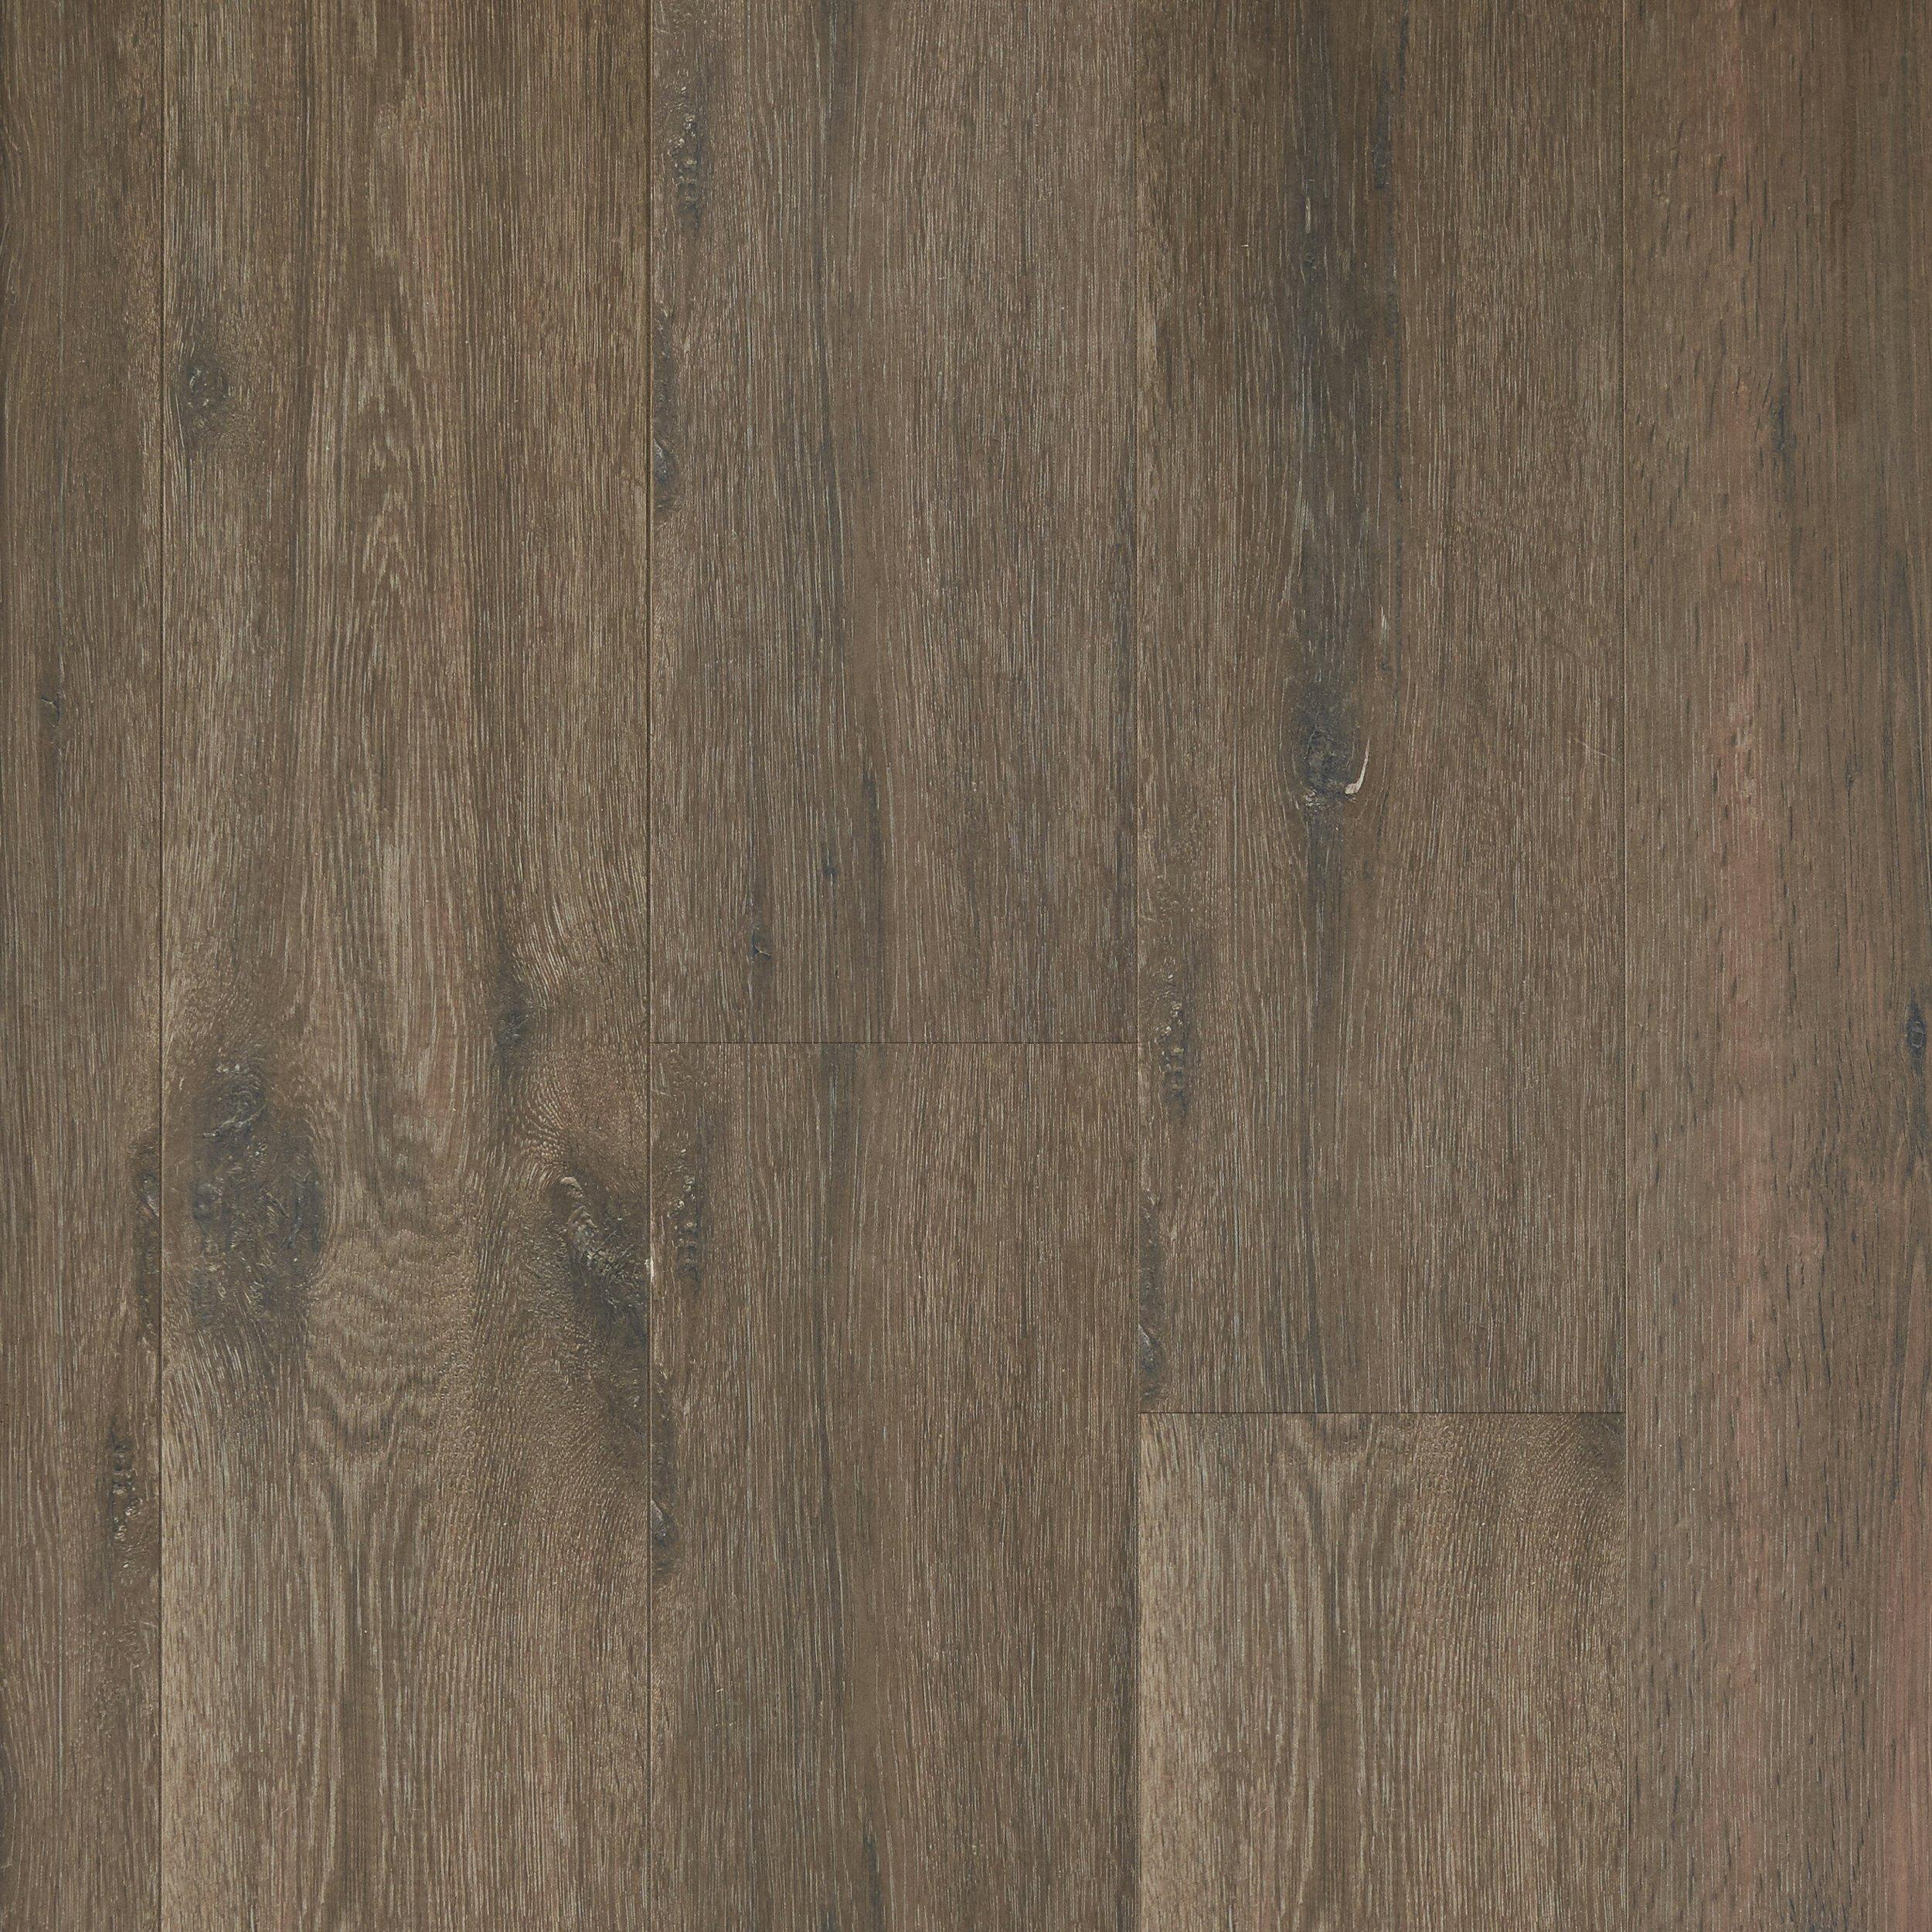 Castille wenque wood plank porcelain tile 8in x 45in castille wenque wood plank porcelain tile 8in x 45in 100076611 floor and decor dailygadgetfo Gallery